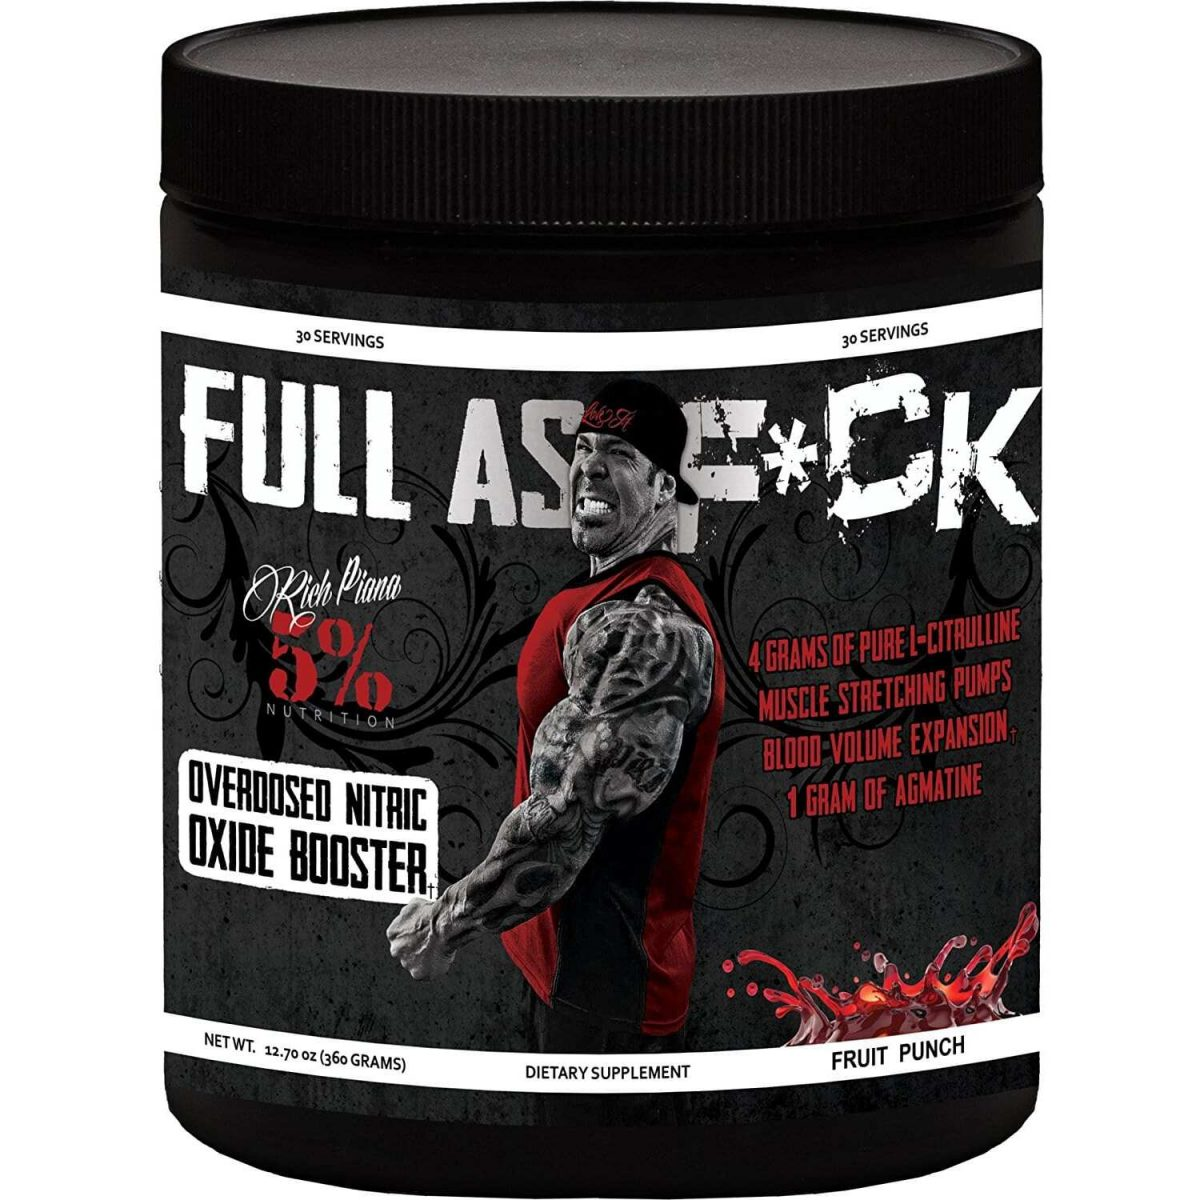 5% Nutrition Full As F*ck Nitric Oxide Booster - Fruit Punch